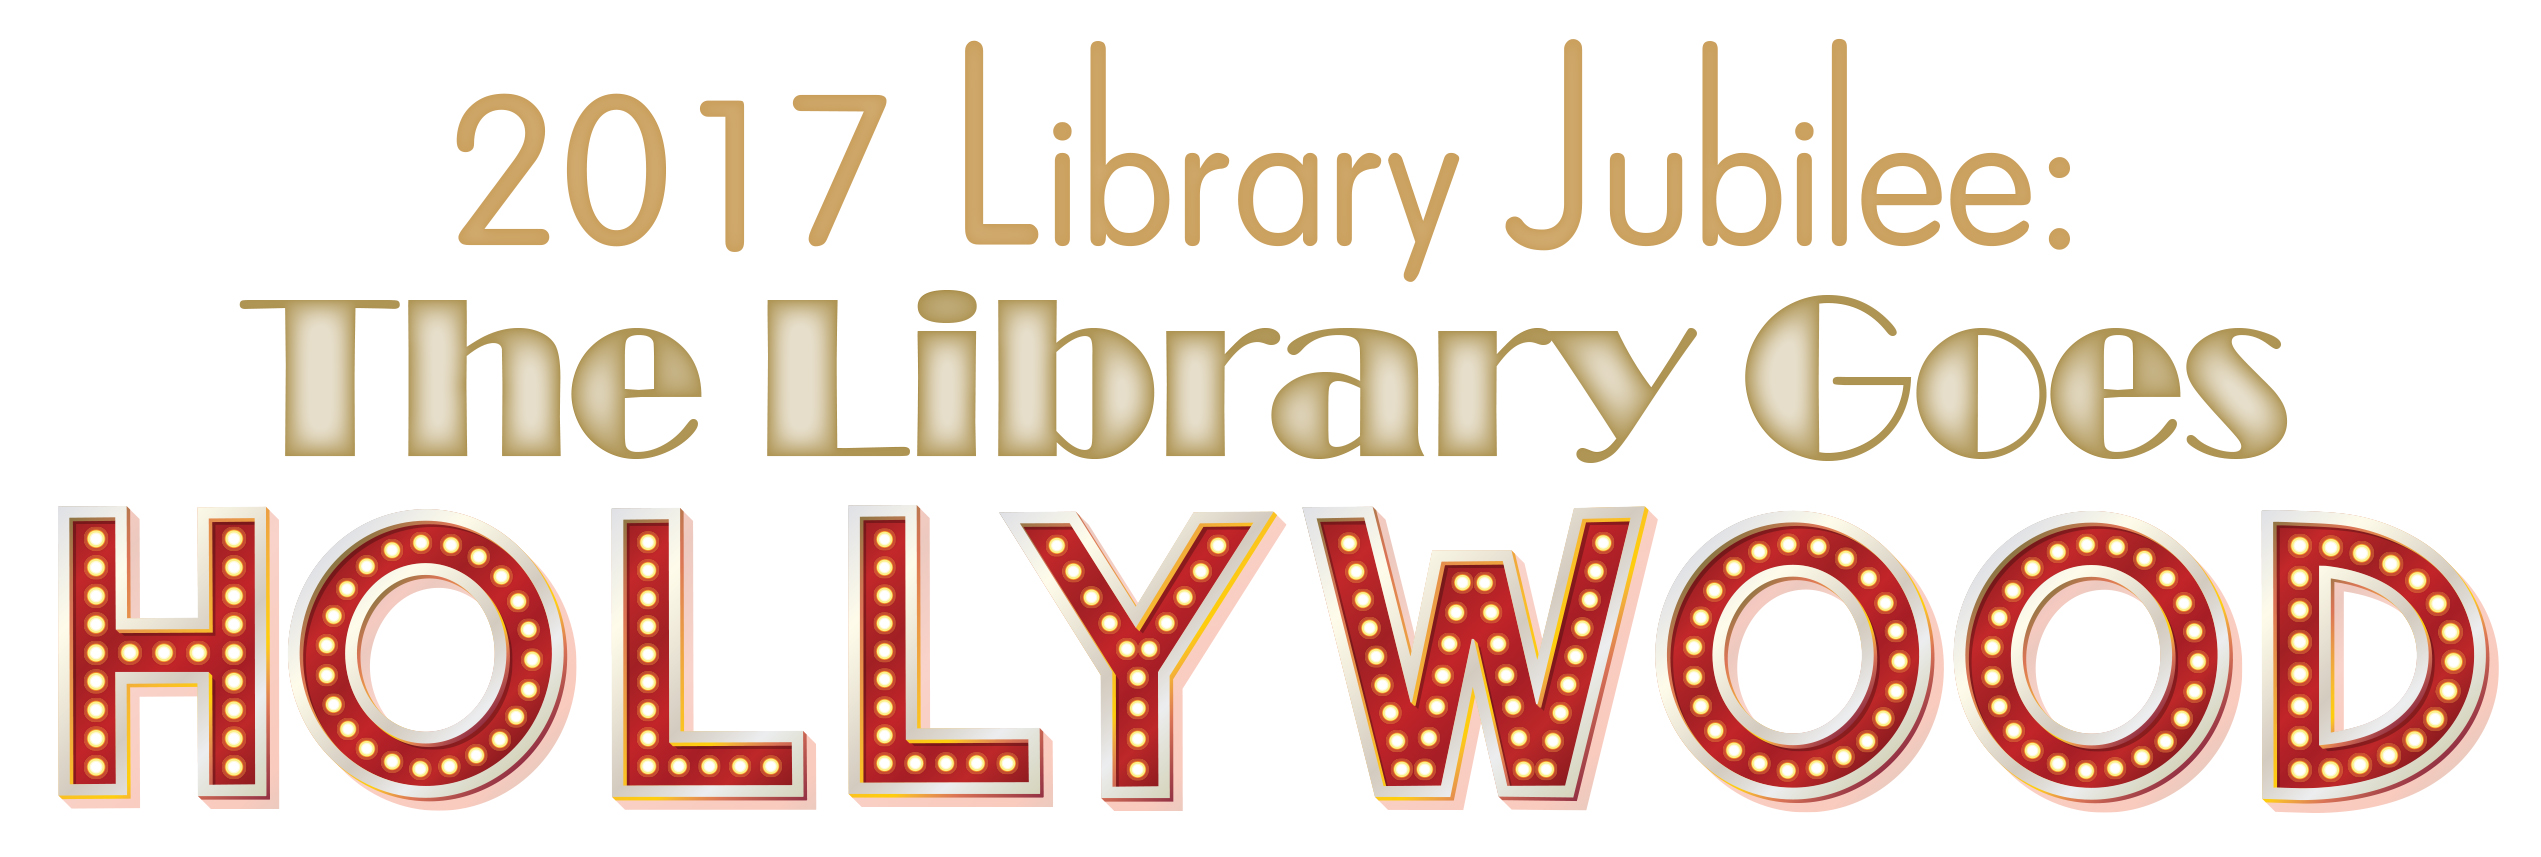 2017 Library Jubilee: The Library Goes Hollywood